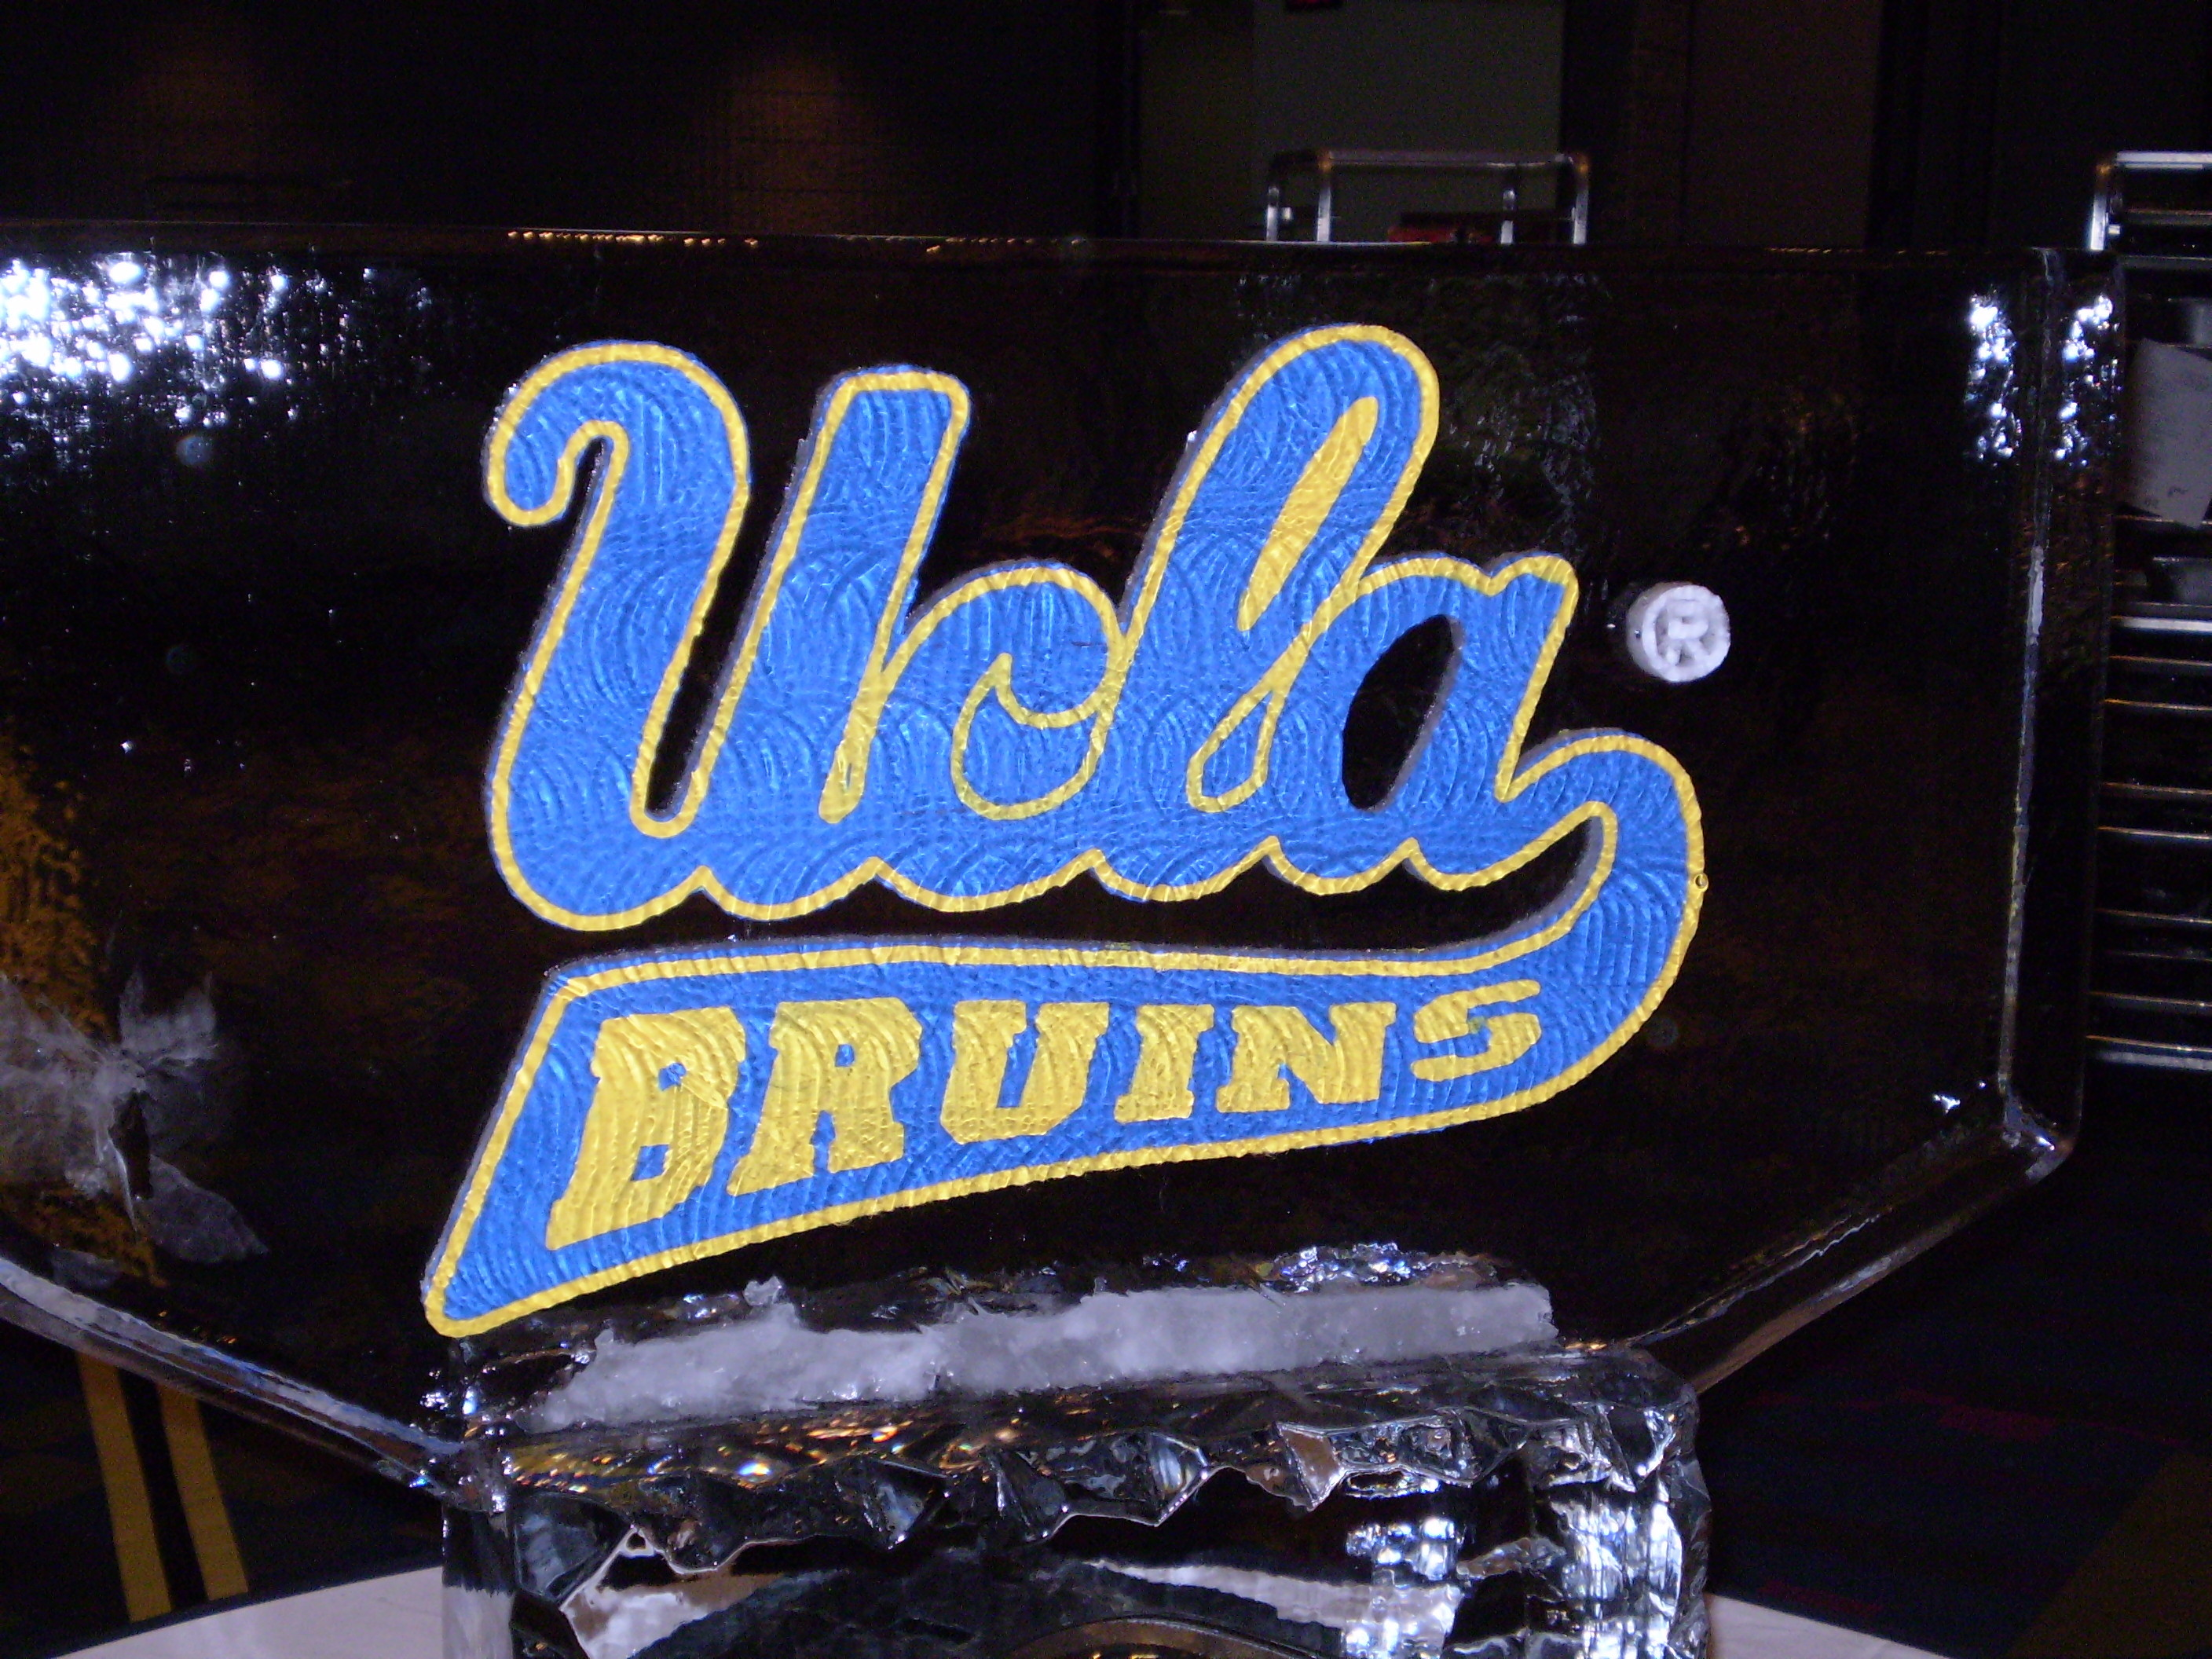 2816x2112 Colored UCLA Bruins Logo Ice Sculpture